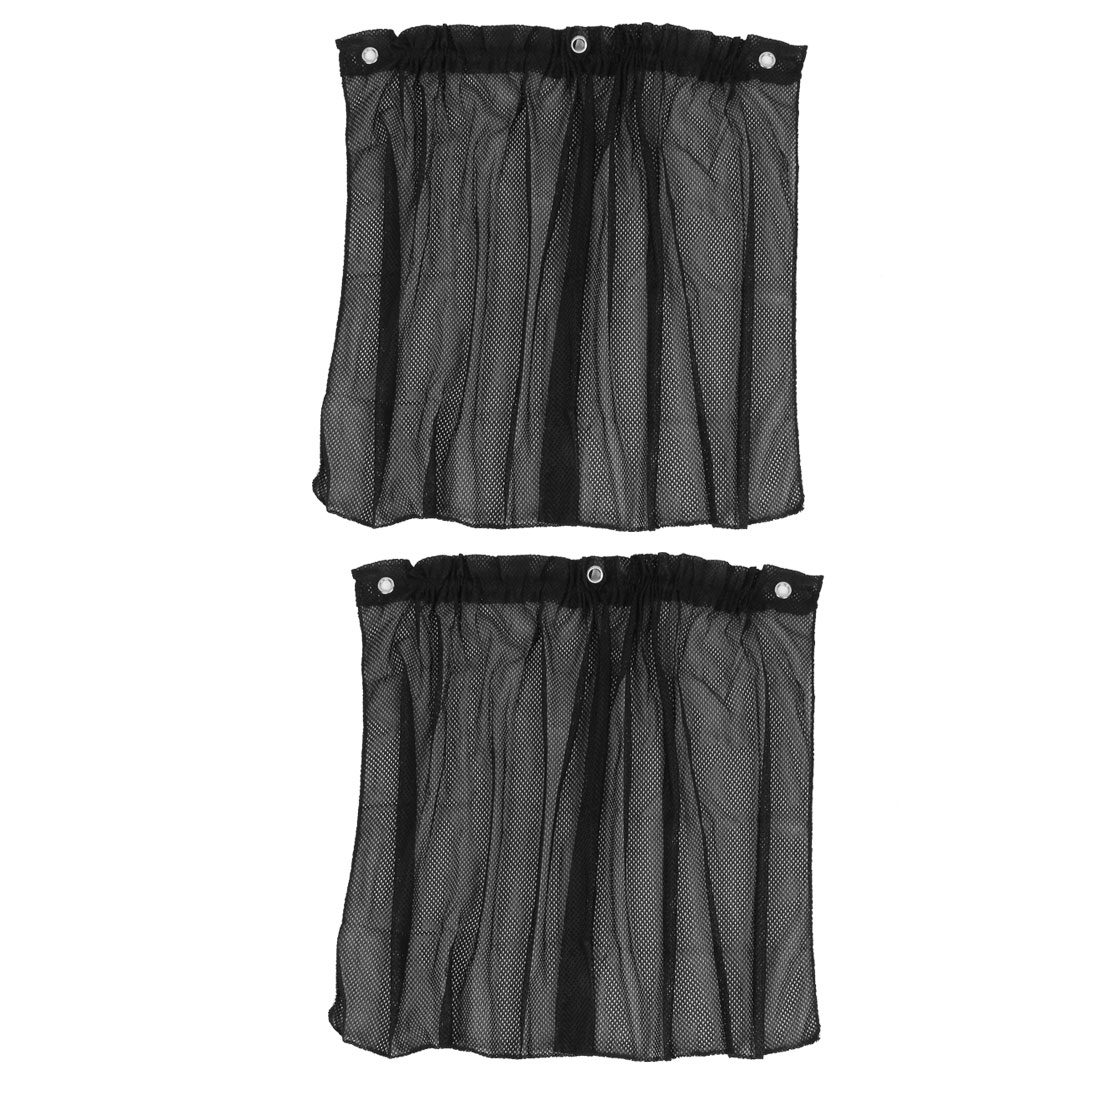 Auto Car Side Window Curtain Folded Mesh Sun Shade Black Pair w Suction Cup